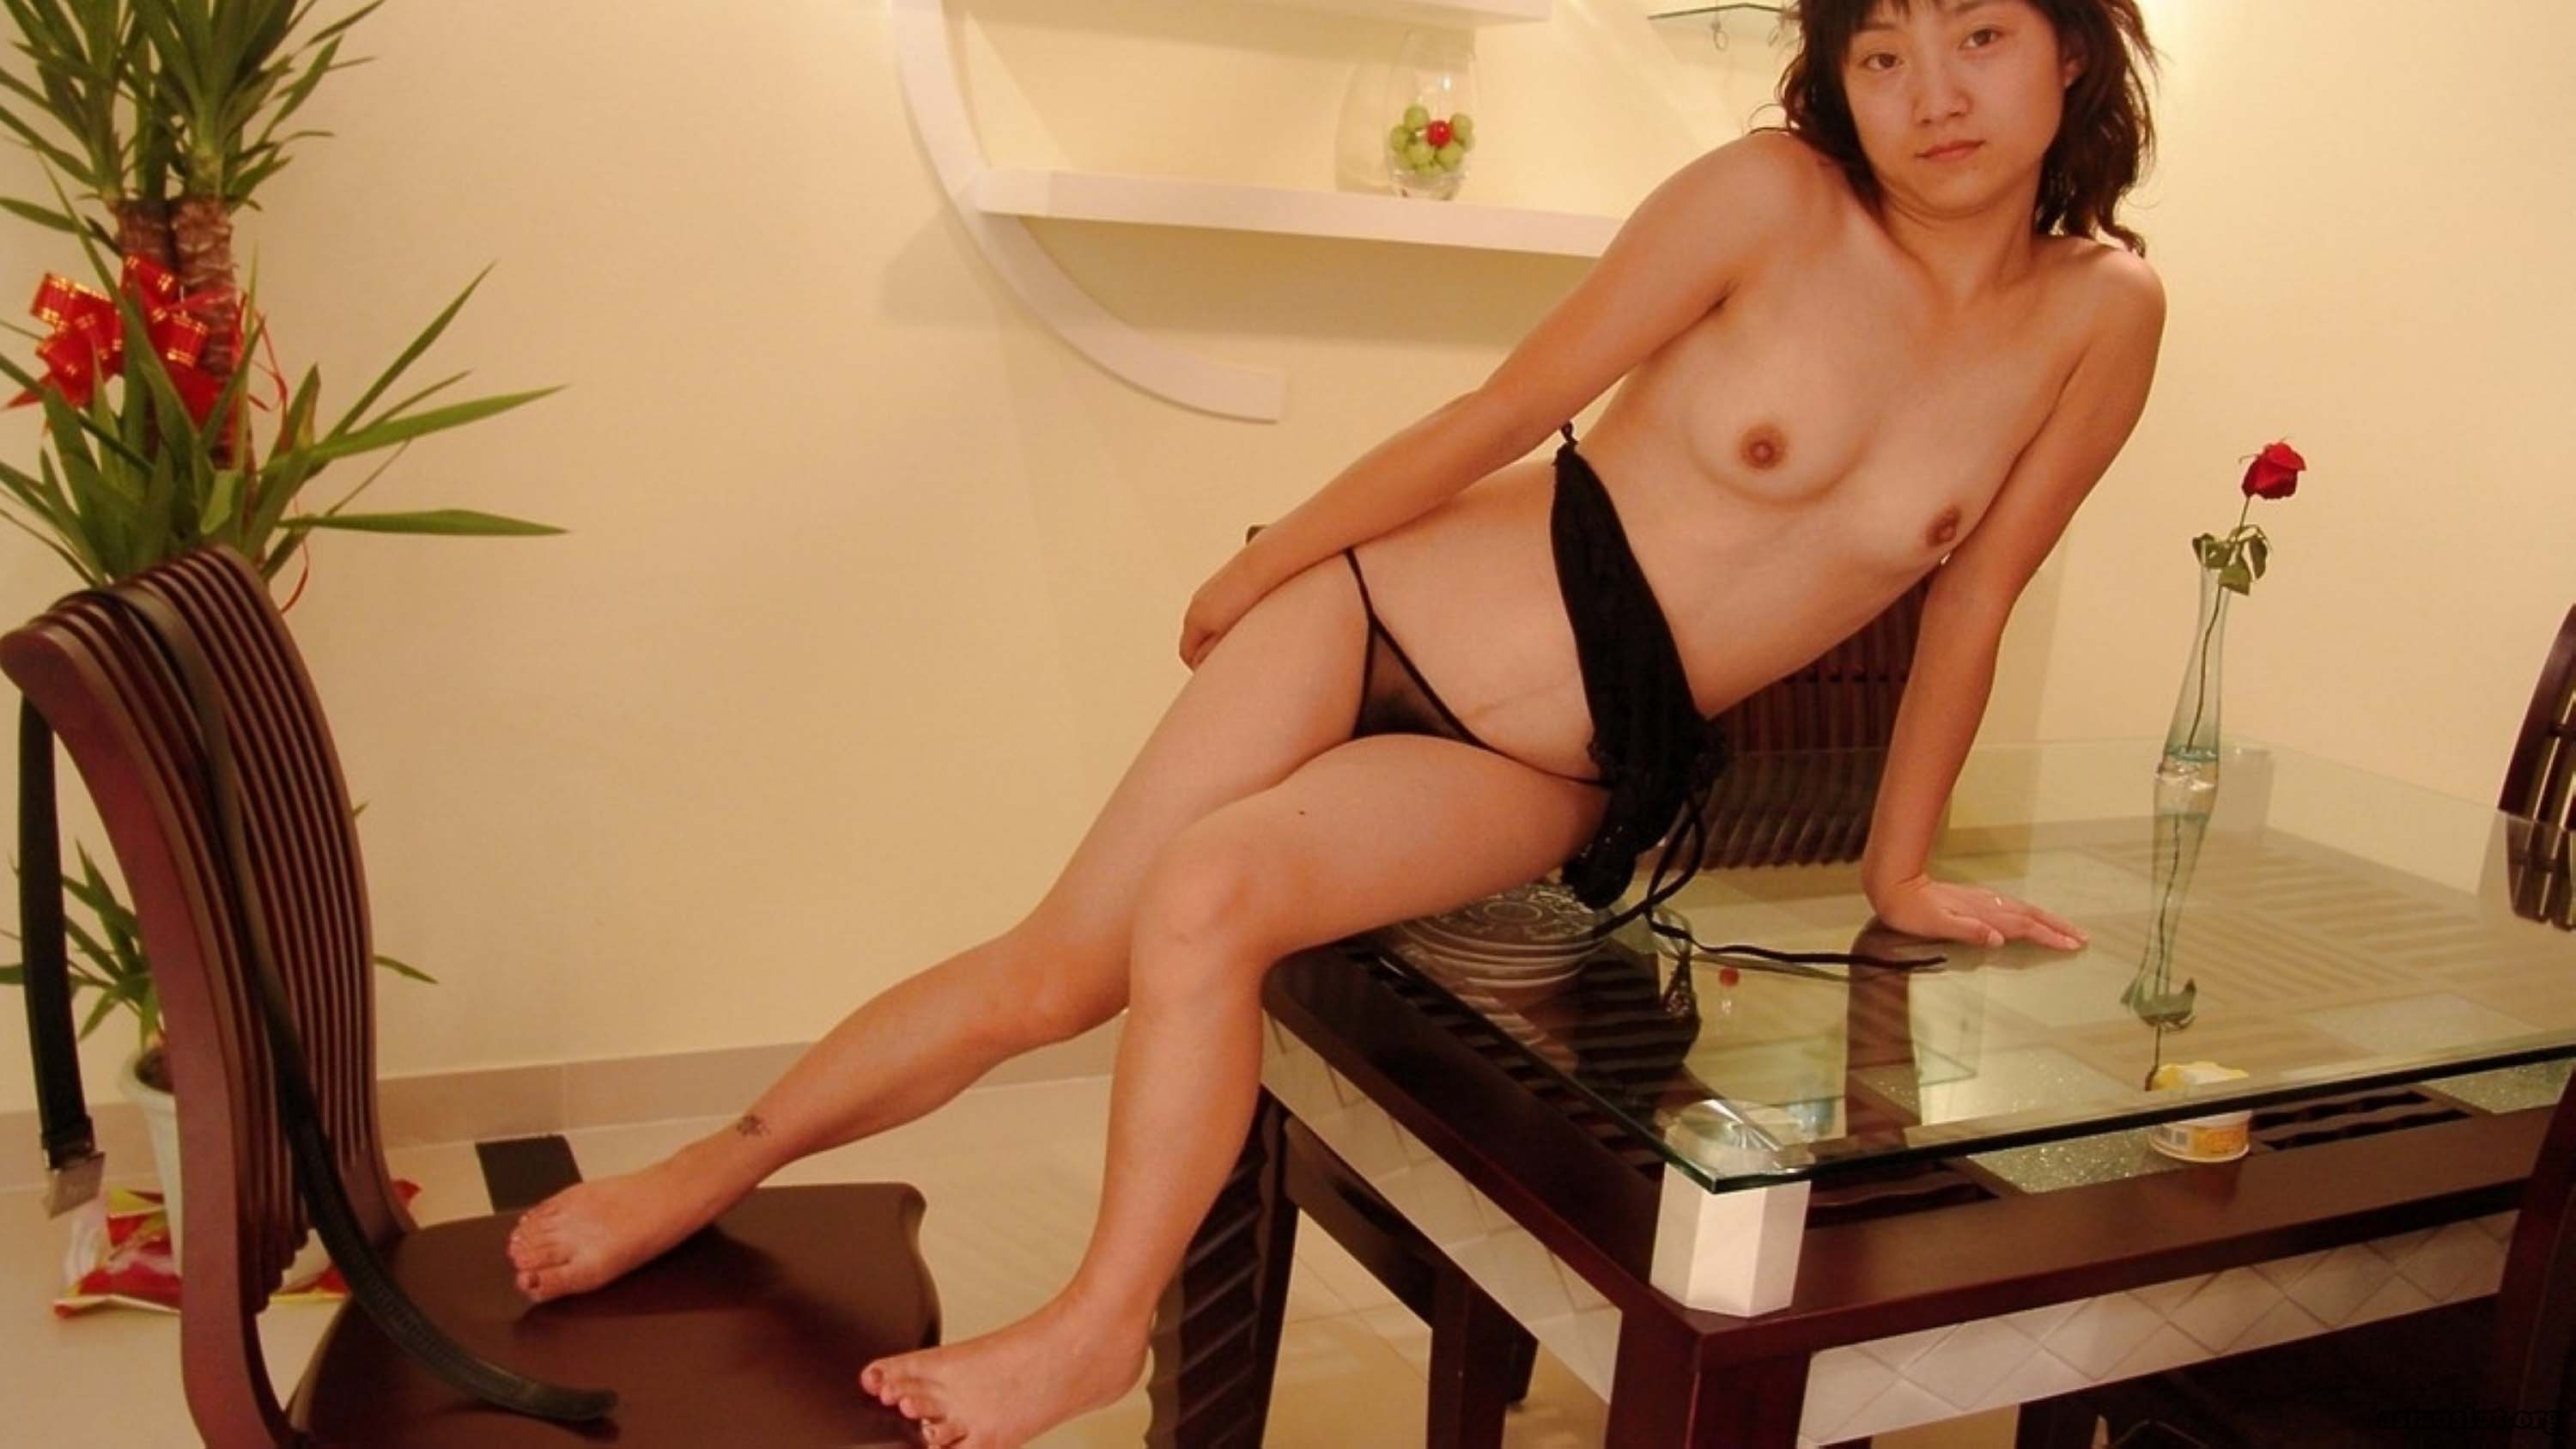 slutty chinese wifes  private dirty sex photos leaked out White Panties stripping Kissing Blowjob Asian Male Asian Female